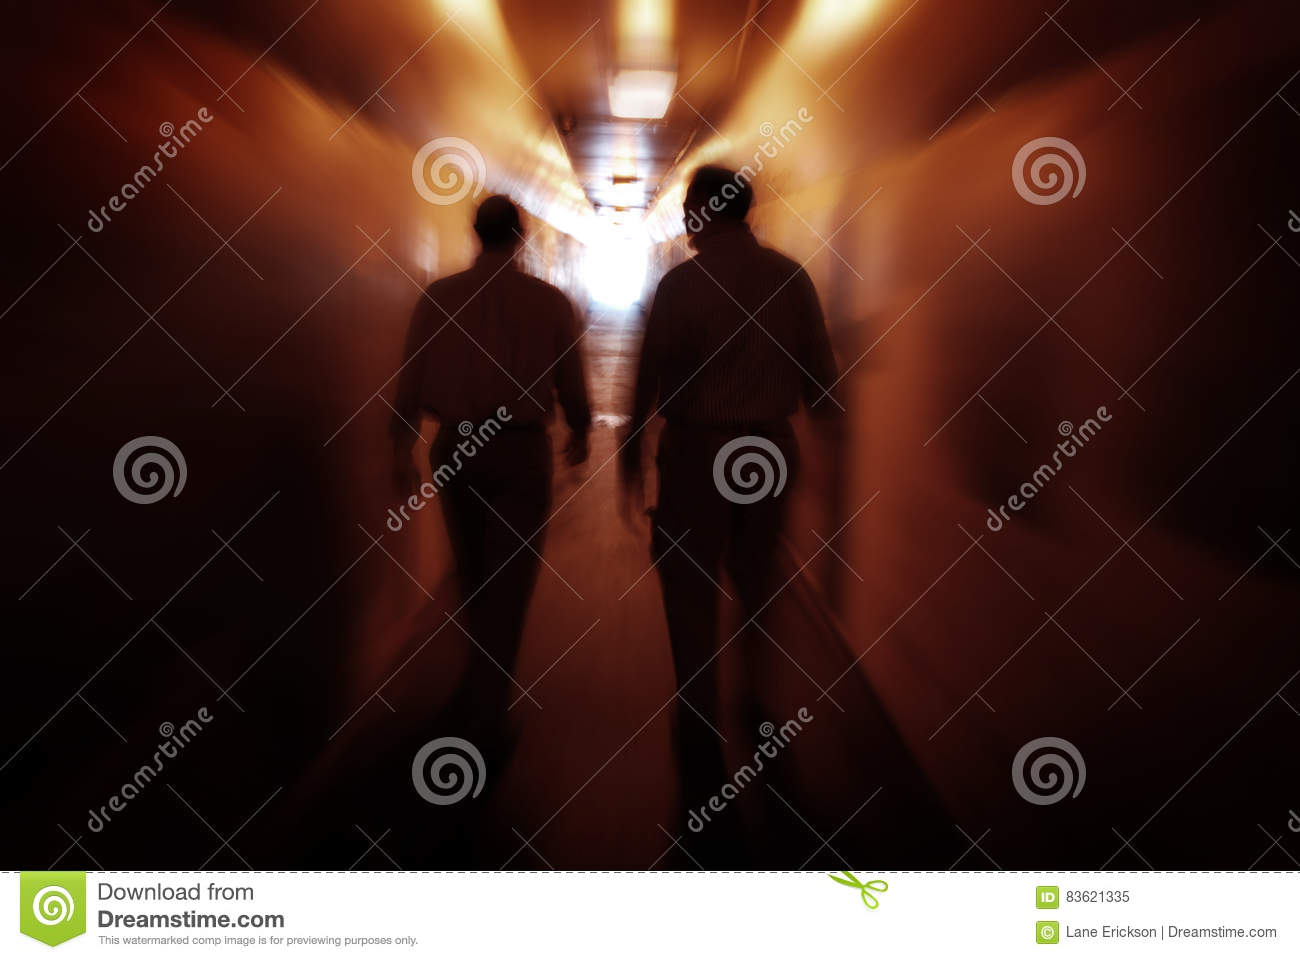 Two men walking through Tunnel Exploring New Places